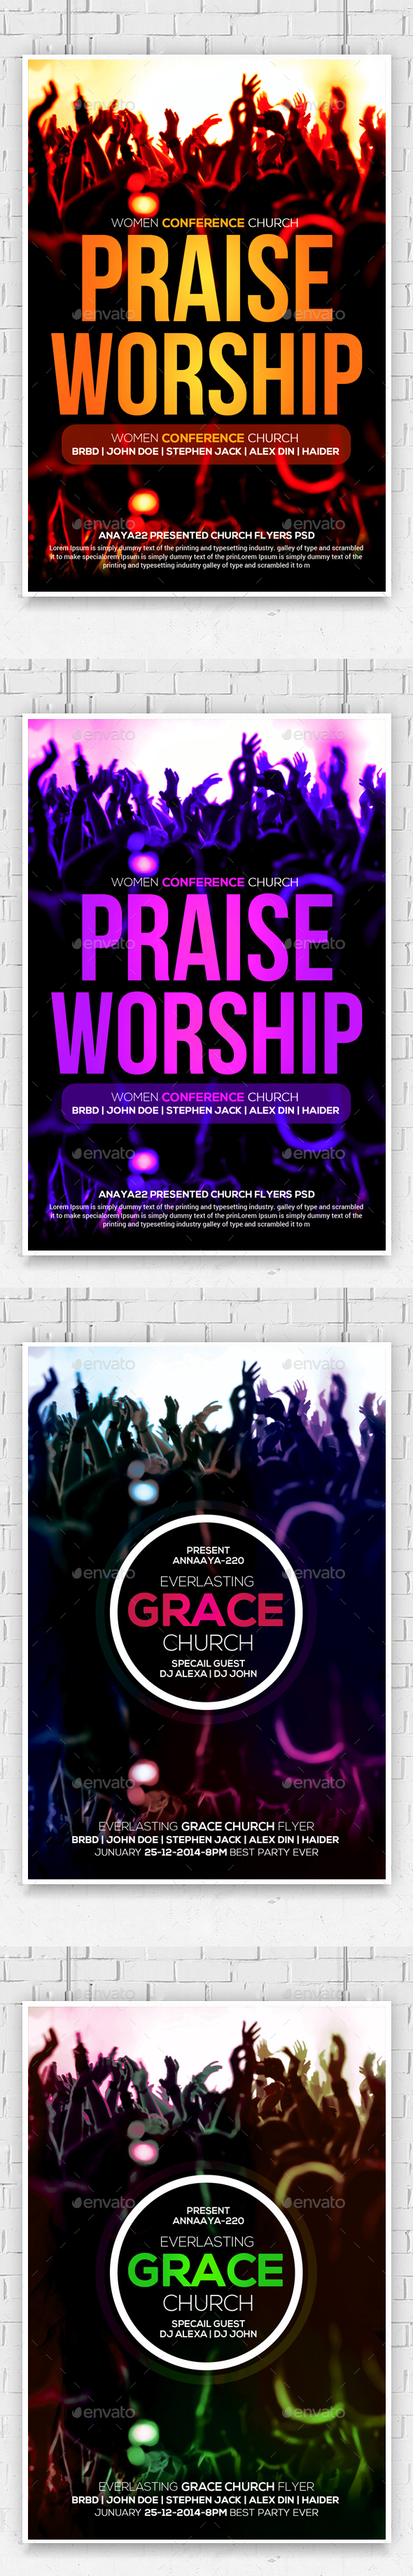 Praise And Worship Church Flyers Bundle - Church Flyers